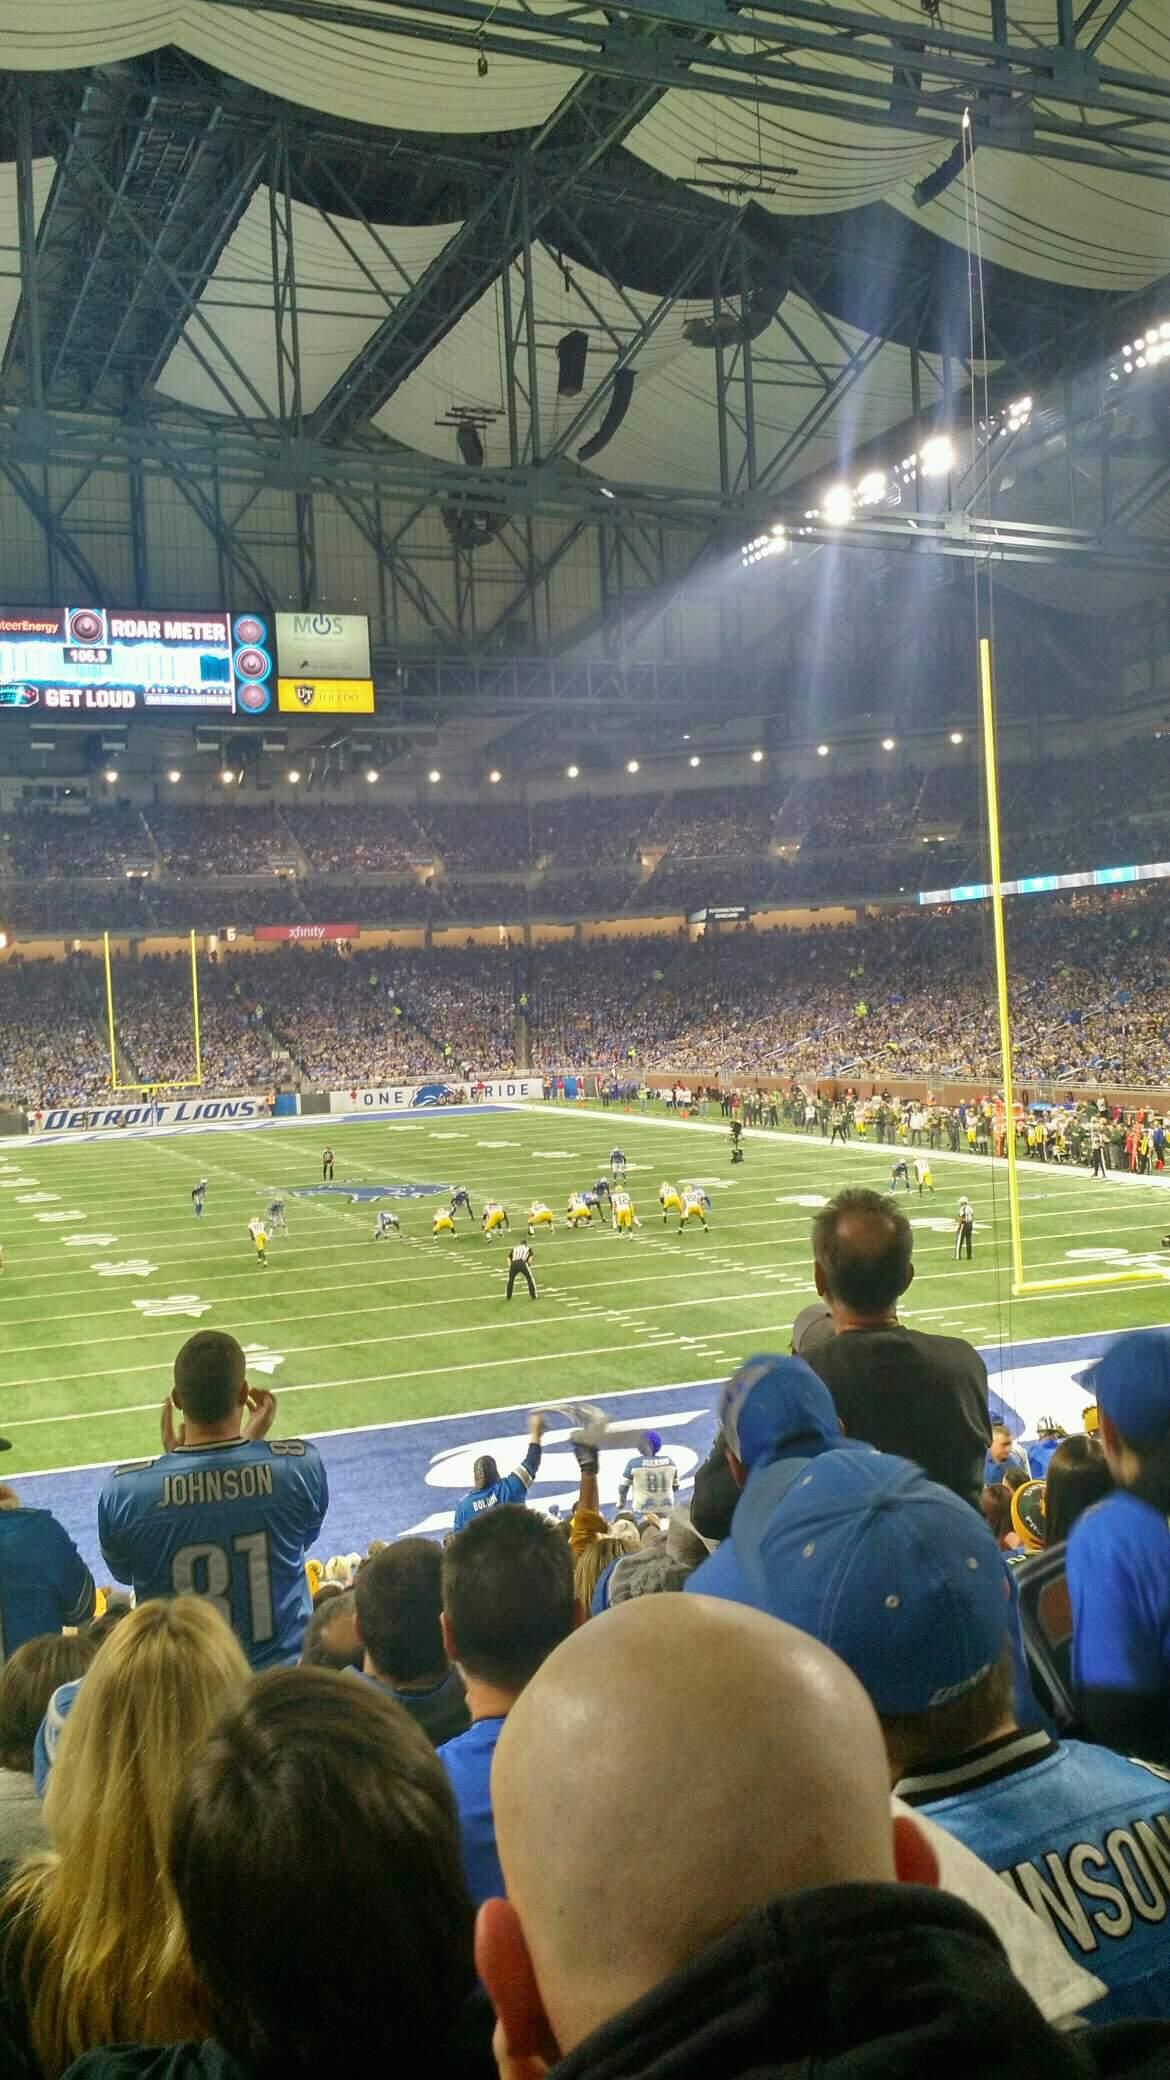 Ford Field Section 115 Row 25 Seat 8